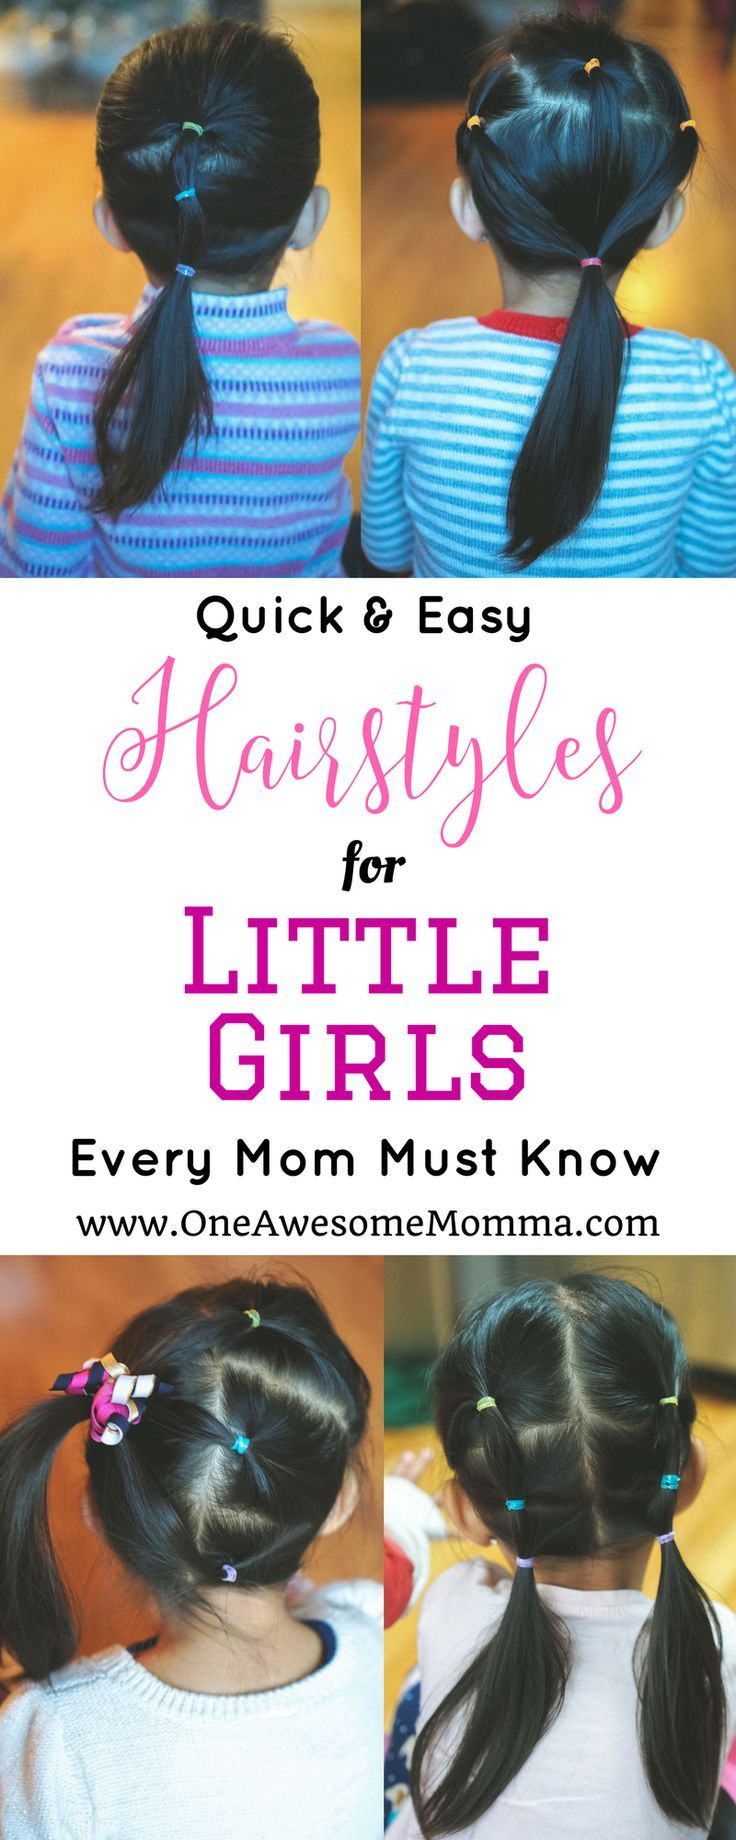 Quick u easy hairstyles for little girls quick easy hairstyles